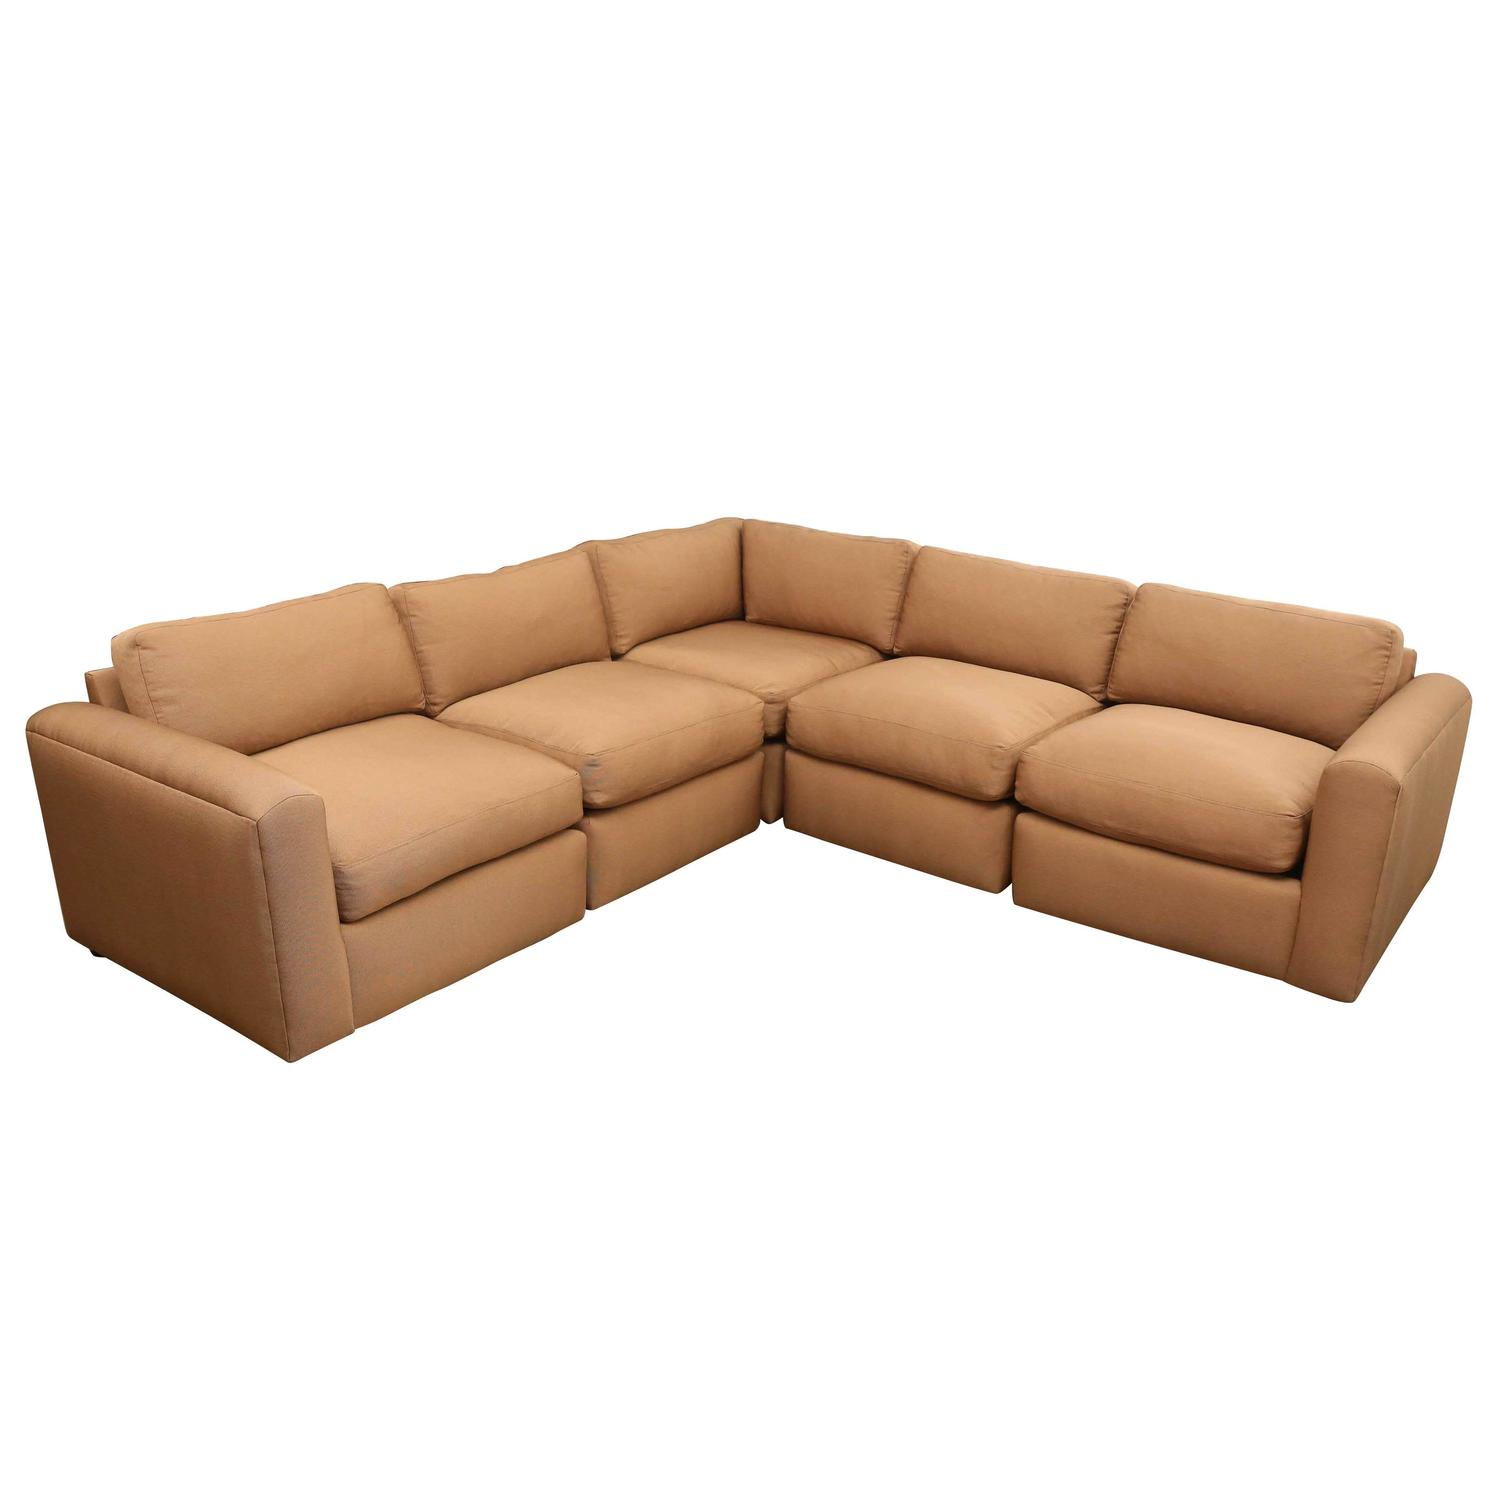 Milo Baughman Sectional Sofas 33 For Sale at 1stdibs